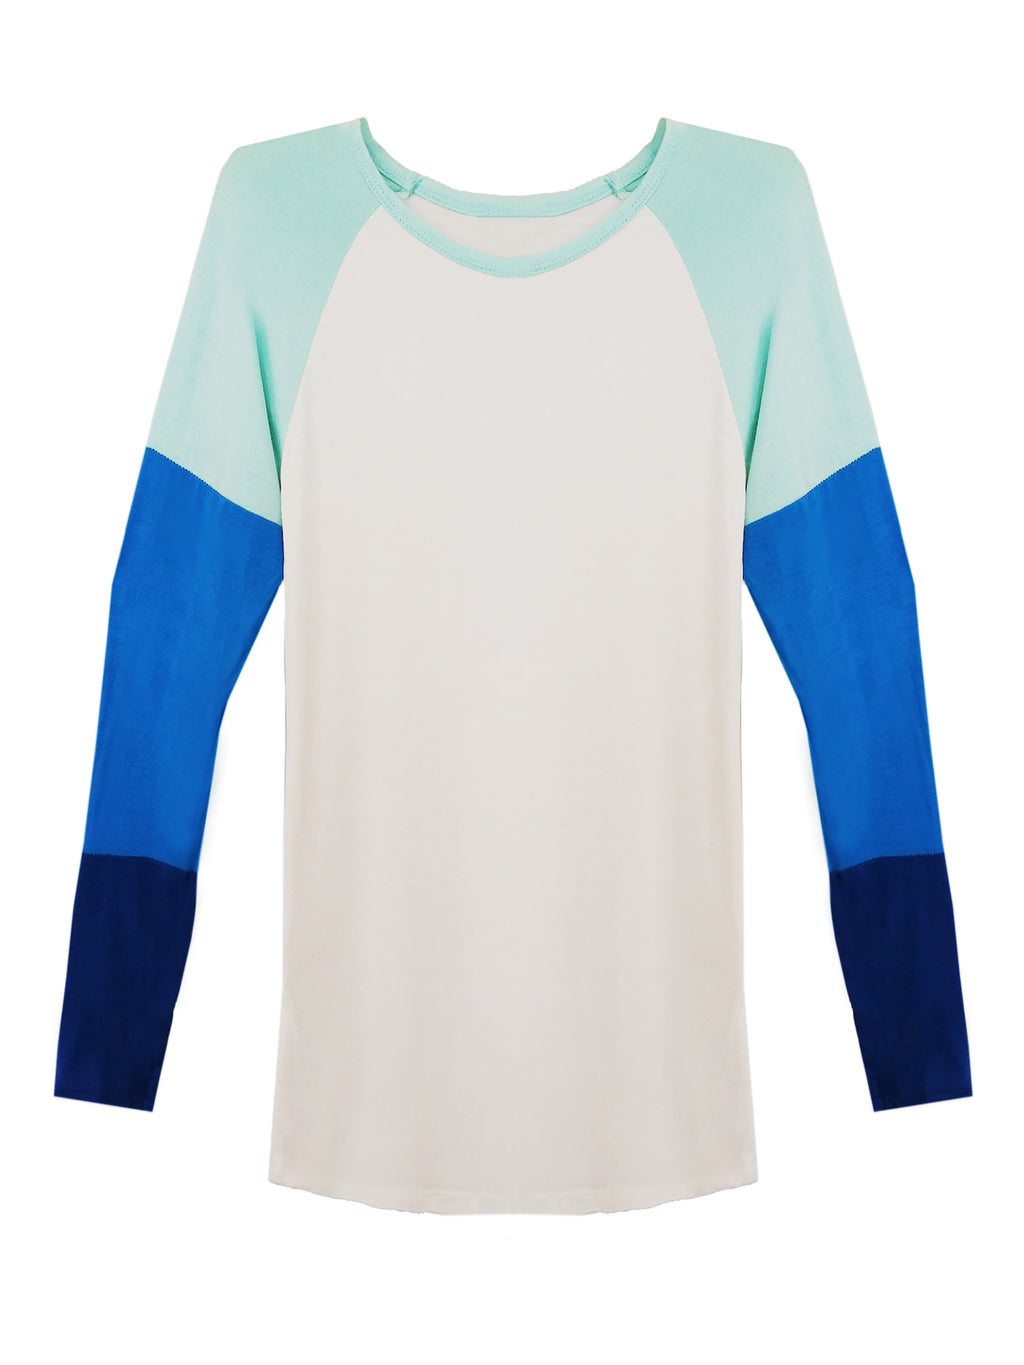 Lightweight White Top With Color Block Sleeves